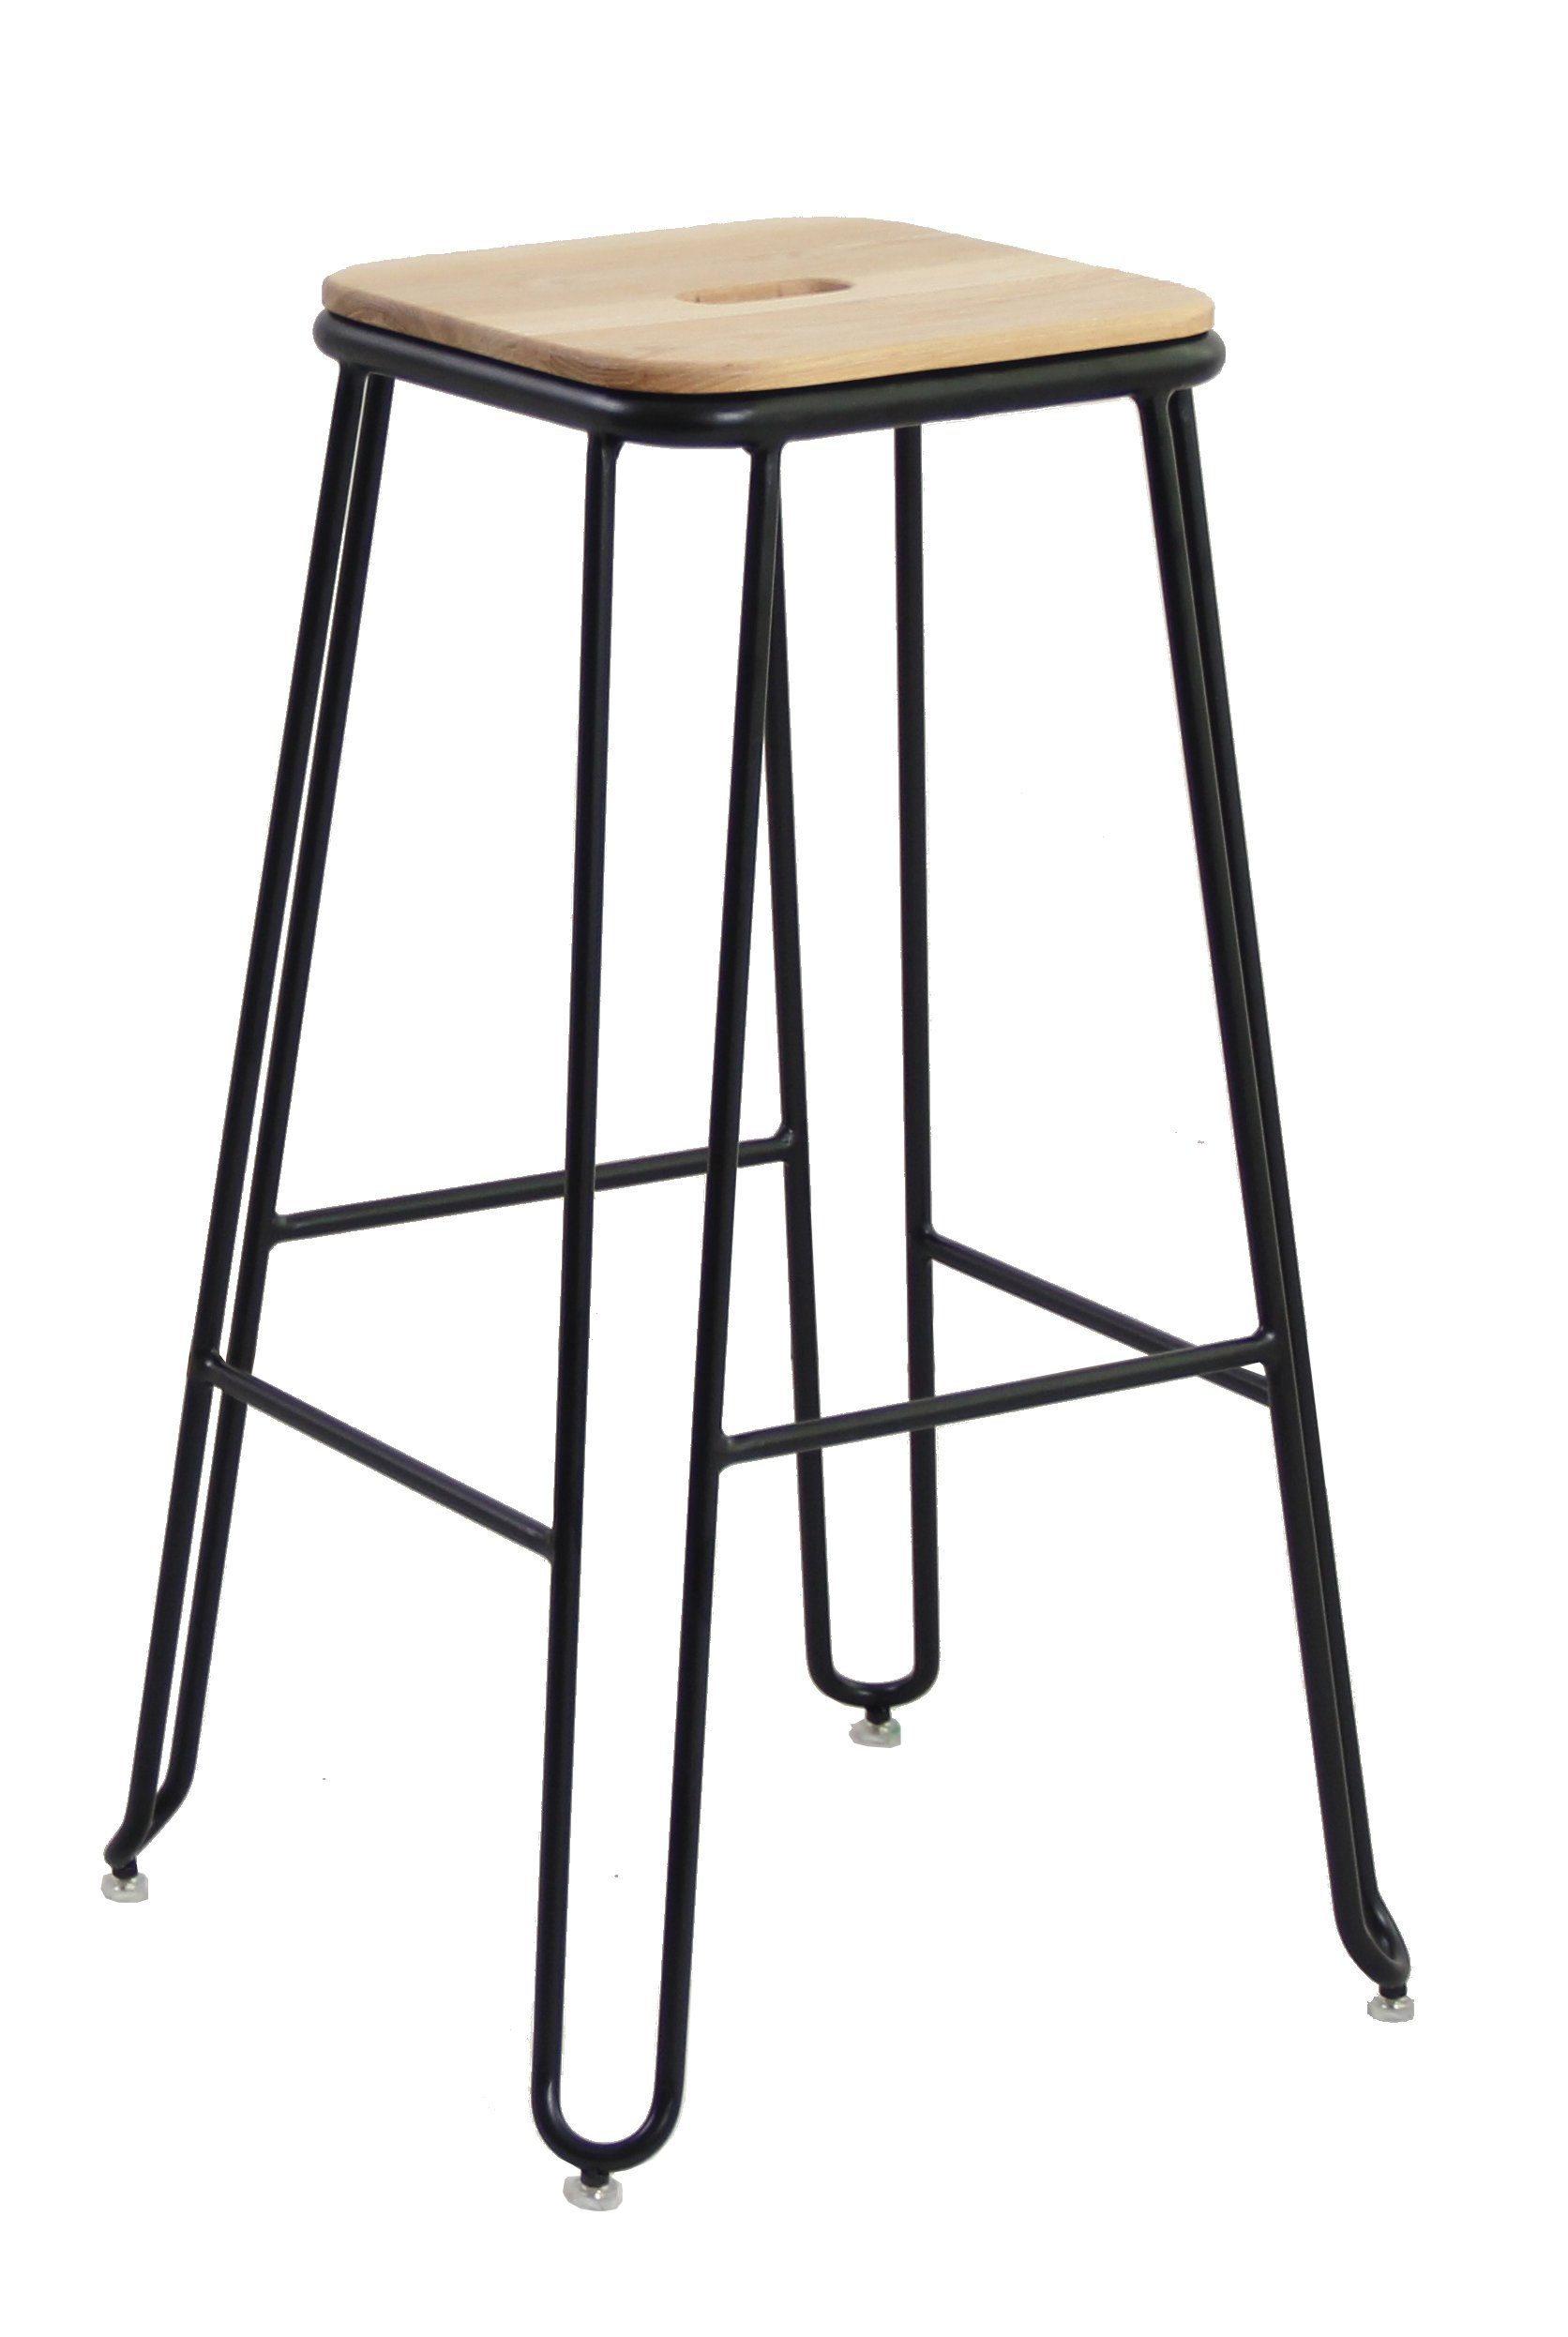 Ash Wood & Steel Industrial Bar Stool | 360HomeWare